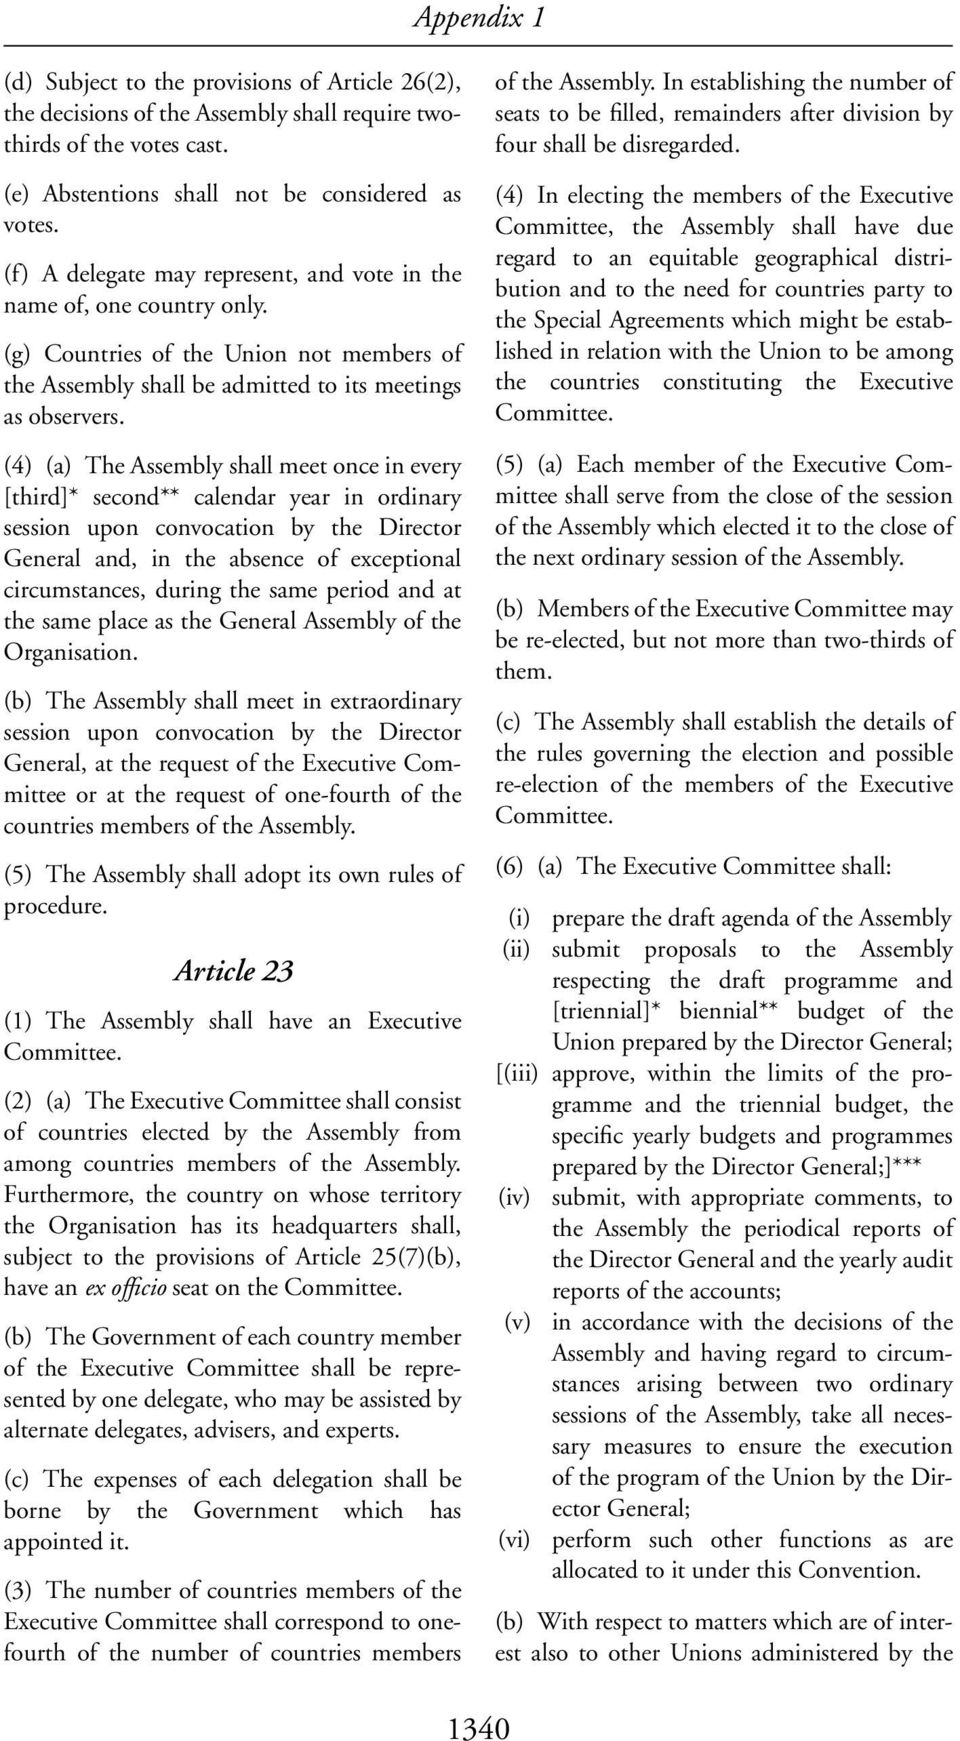 (4) (a) The Assembly shall meet once in every [third]* second** calendar year in ordinary session upon convocation by the Director General and, in the absence of exceptional circumstances, during the